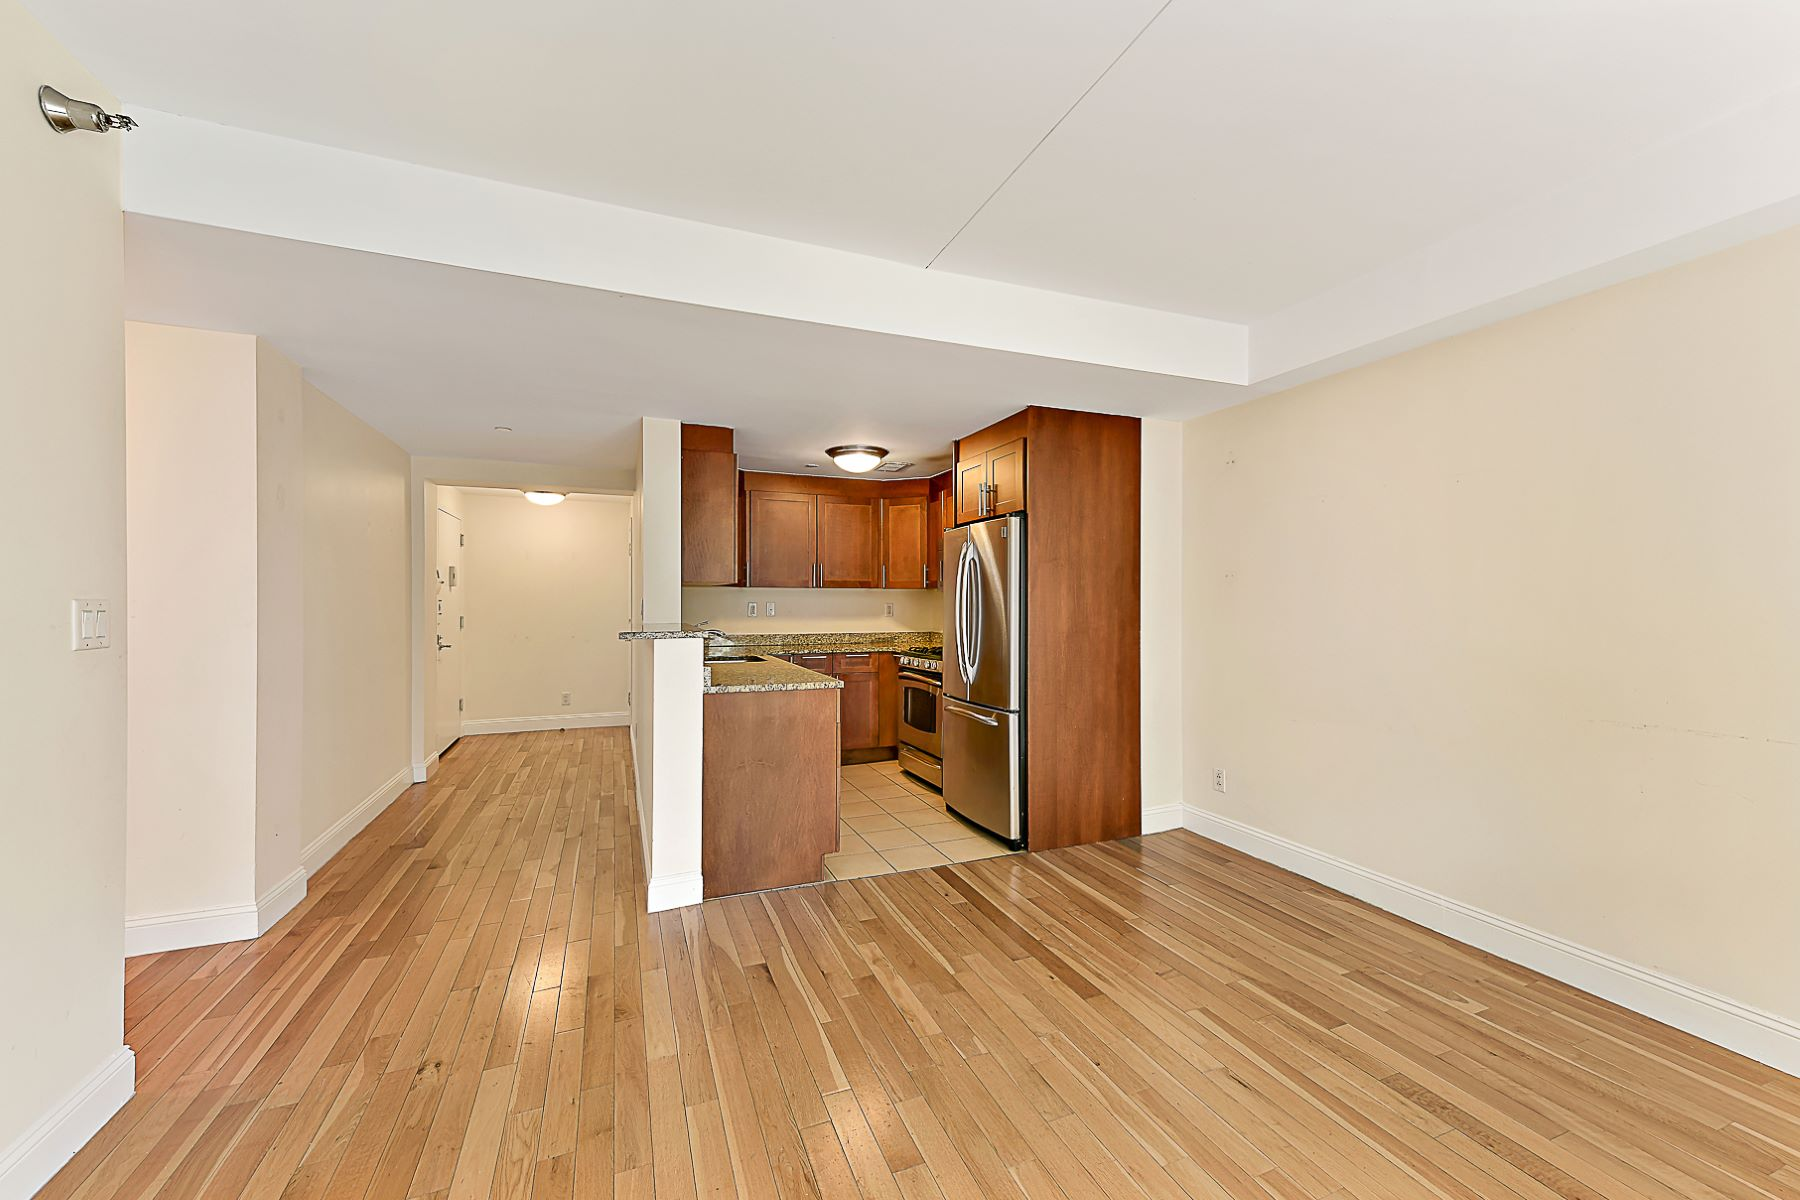 Condominiums for Sale at 3536 Cambridge Avenue 3C Riverdale, New York 10463 United States